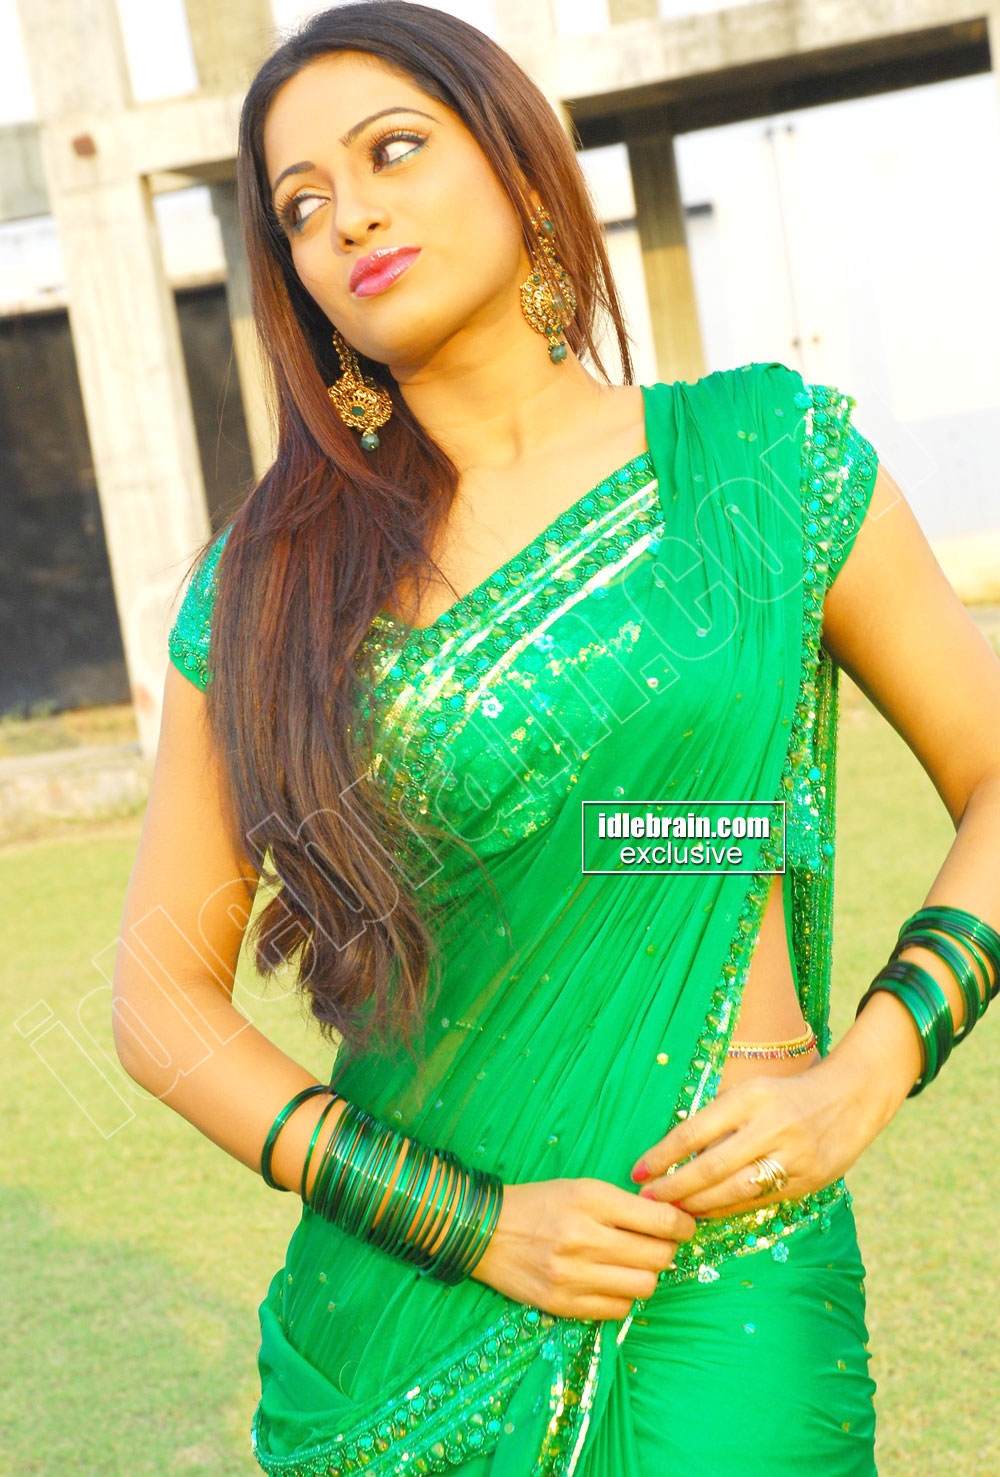 Udaya banu telugu tv anchor